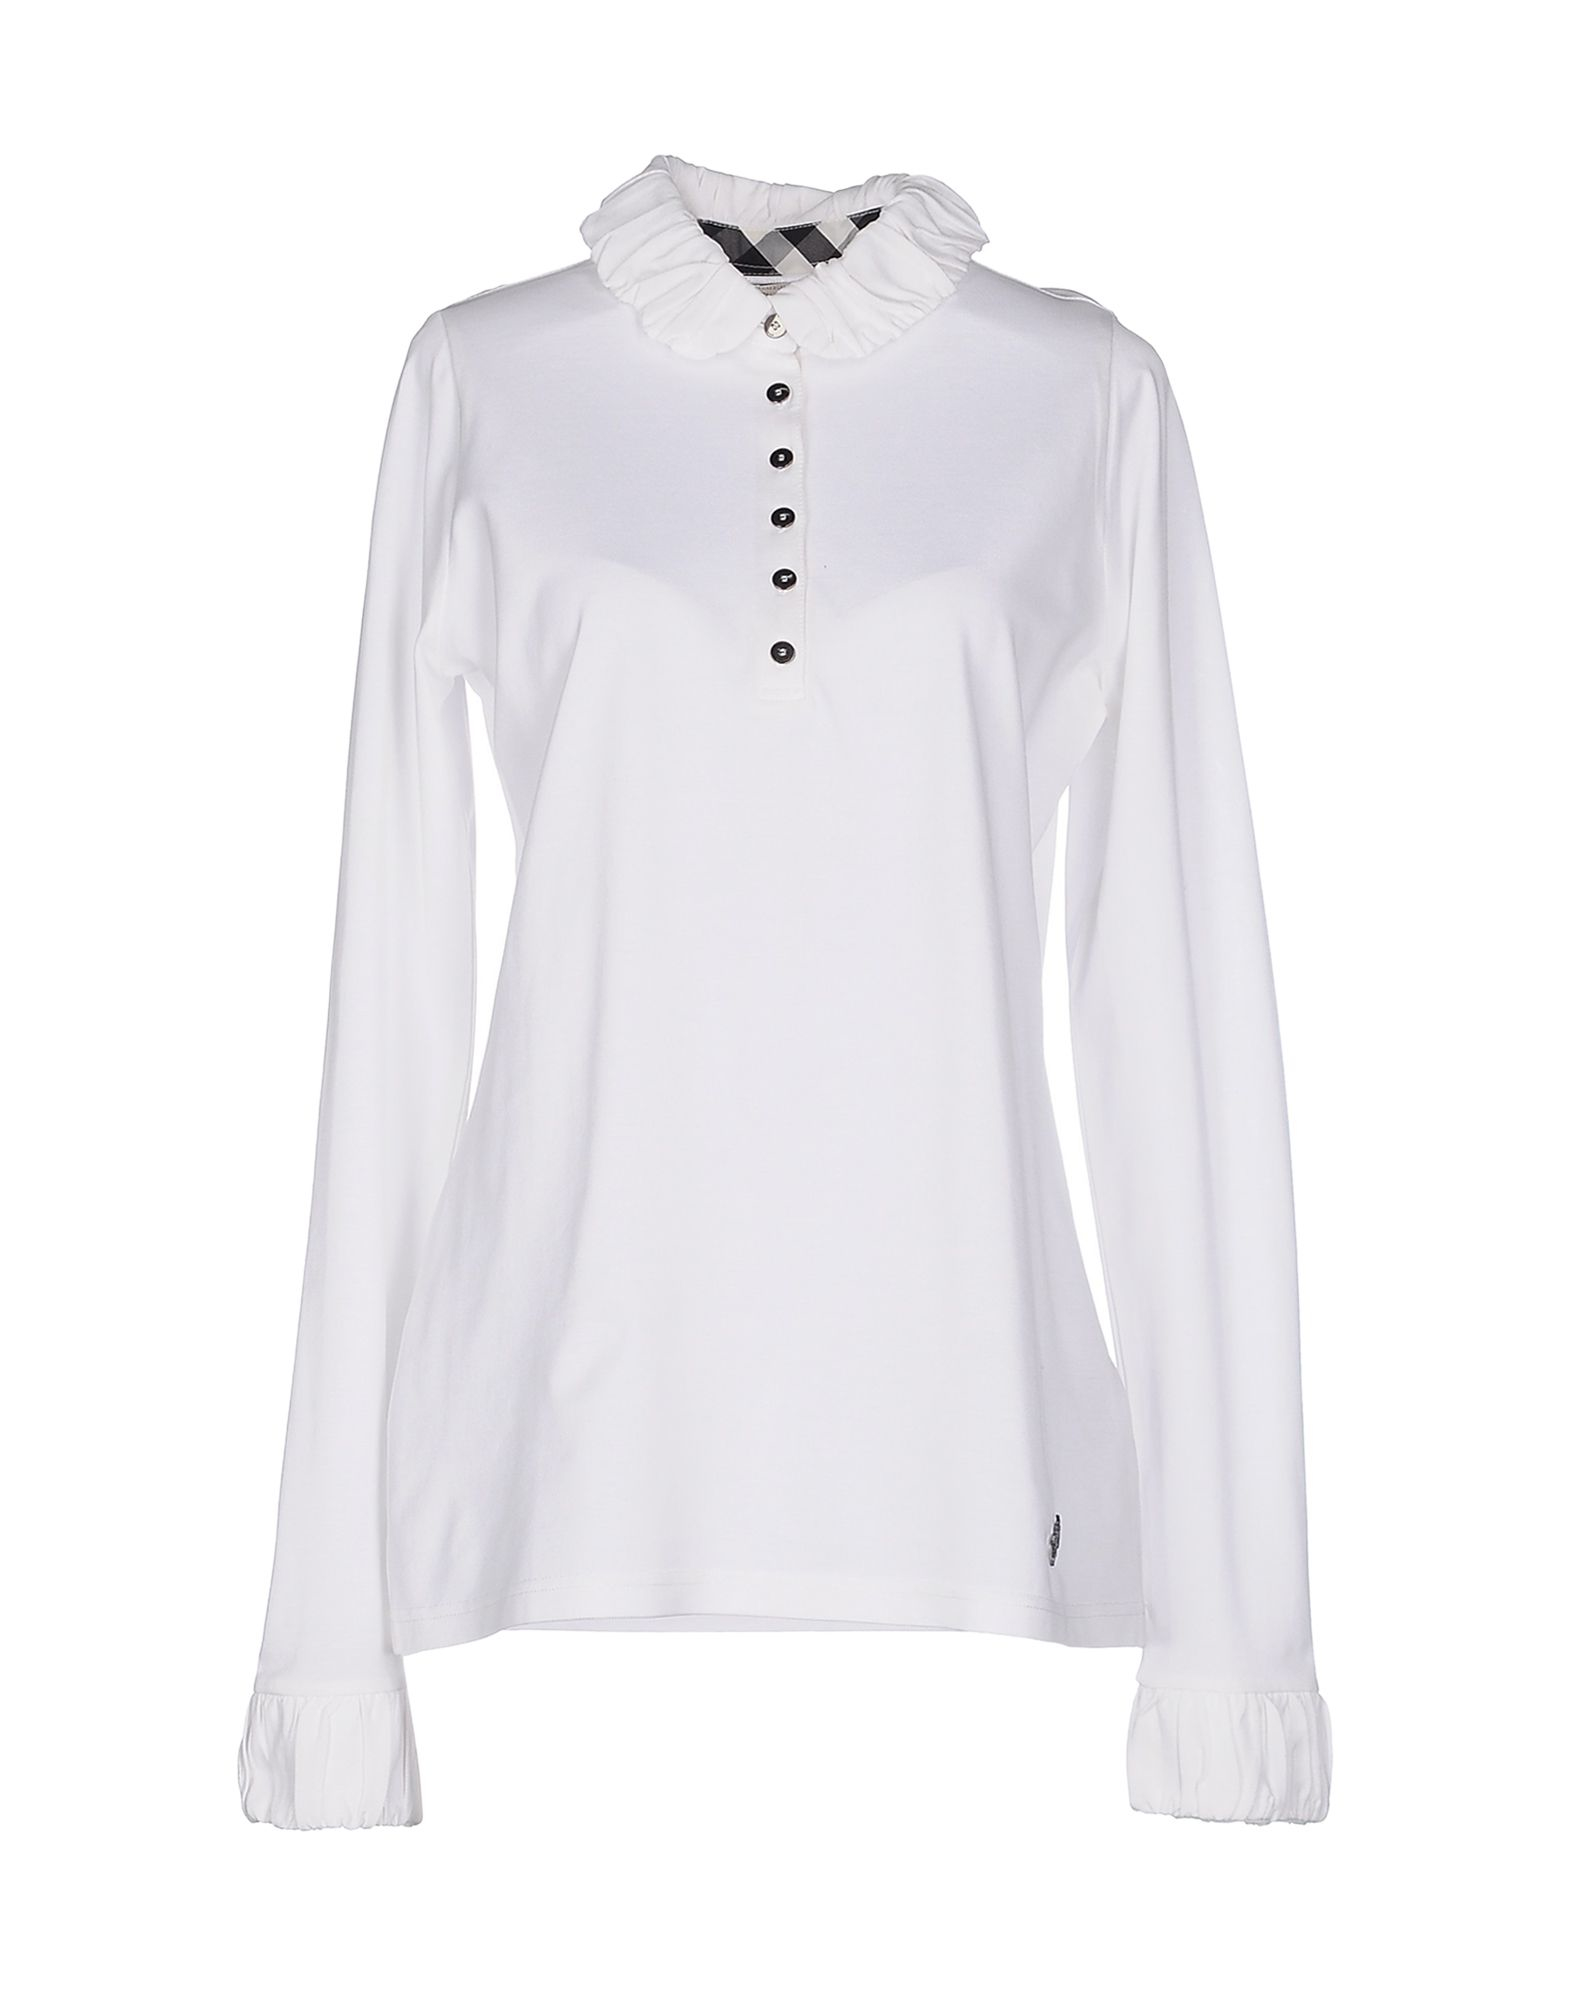 ff27d3245 Lyst Burberry Brit Polo Shirt In White | The Art of Mike Mignola